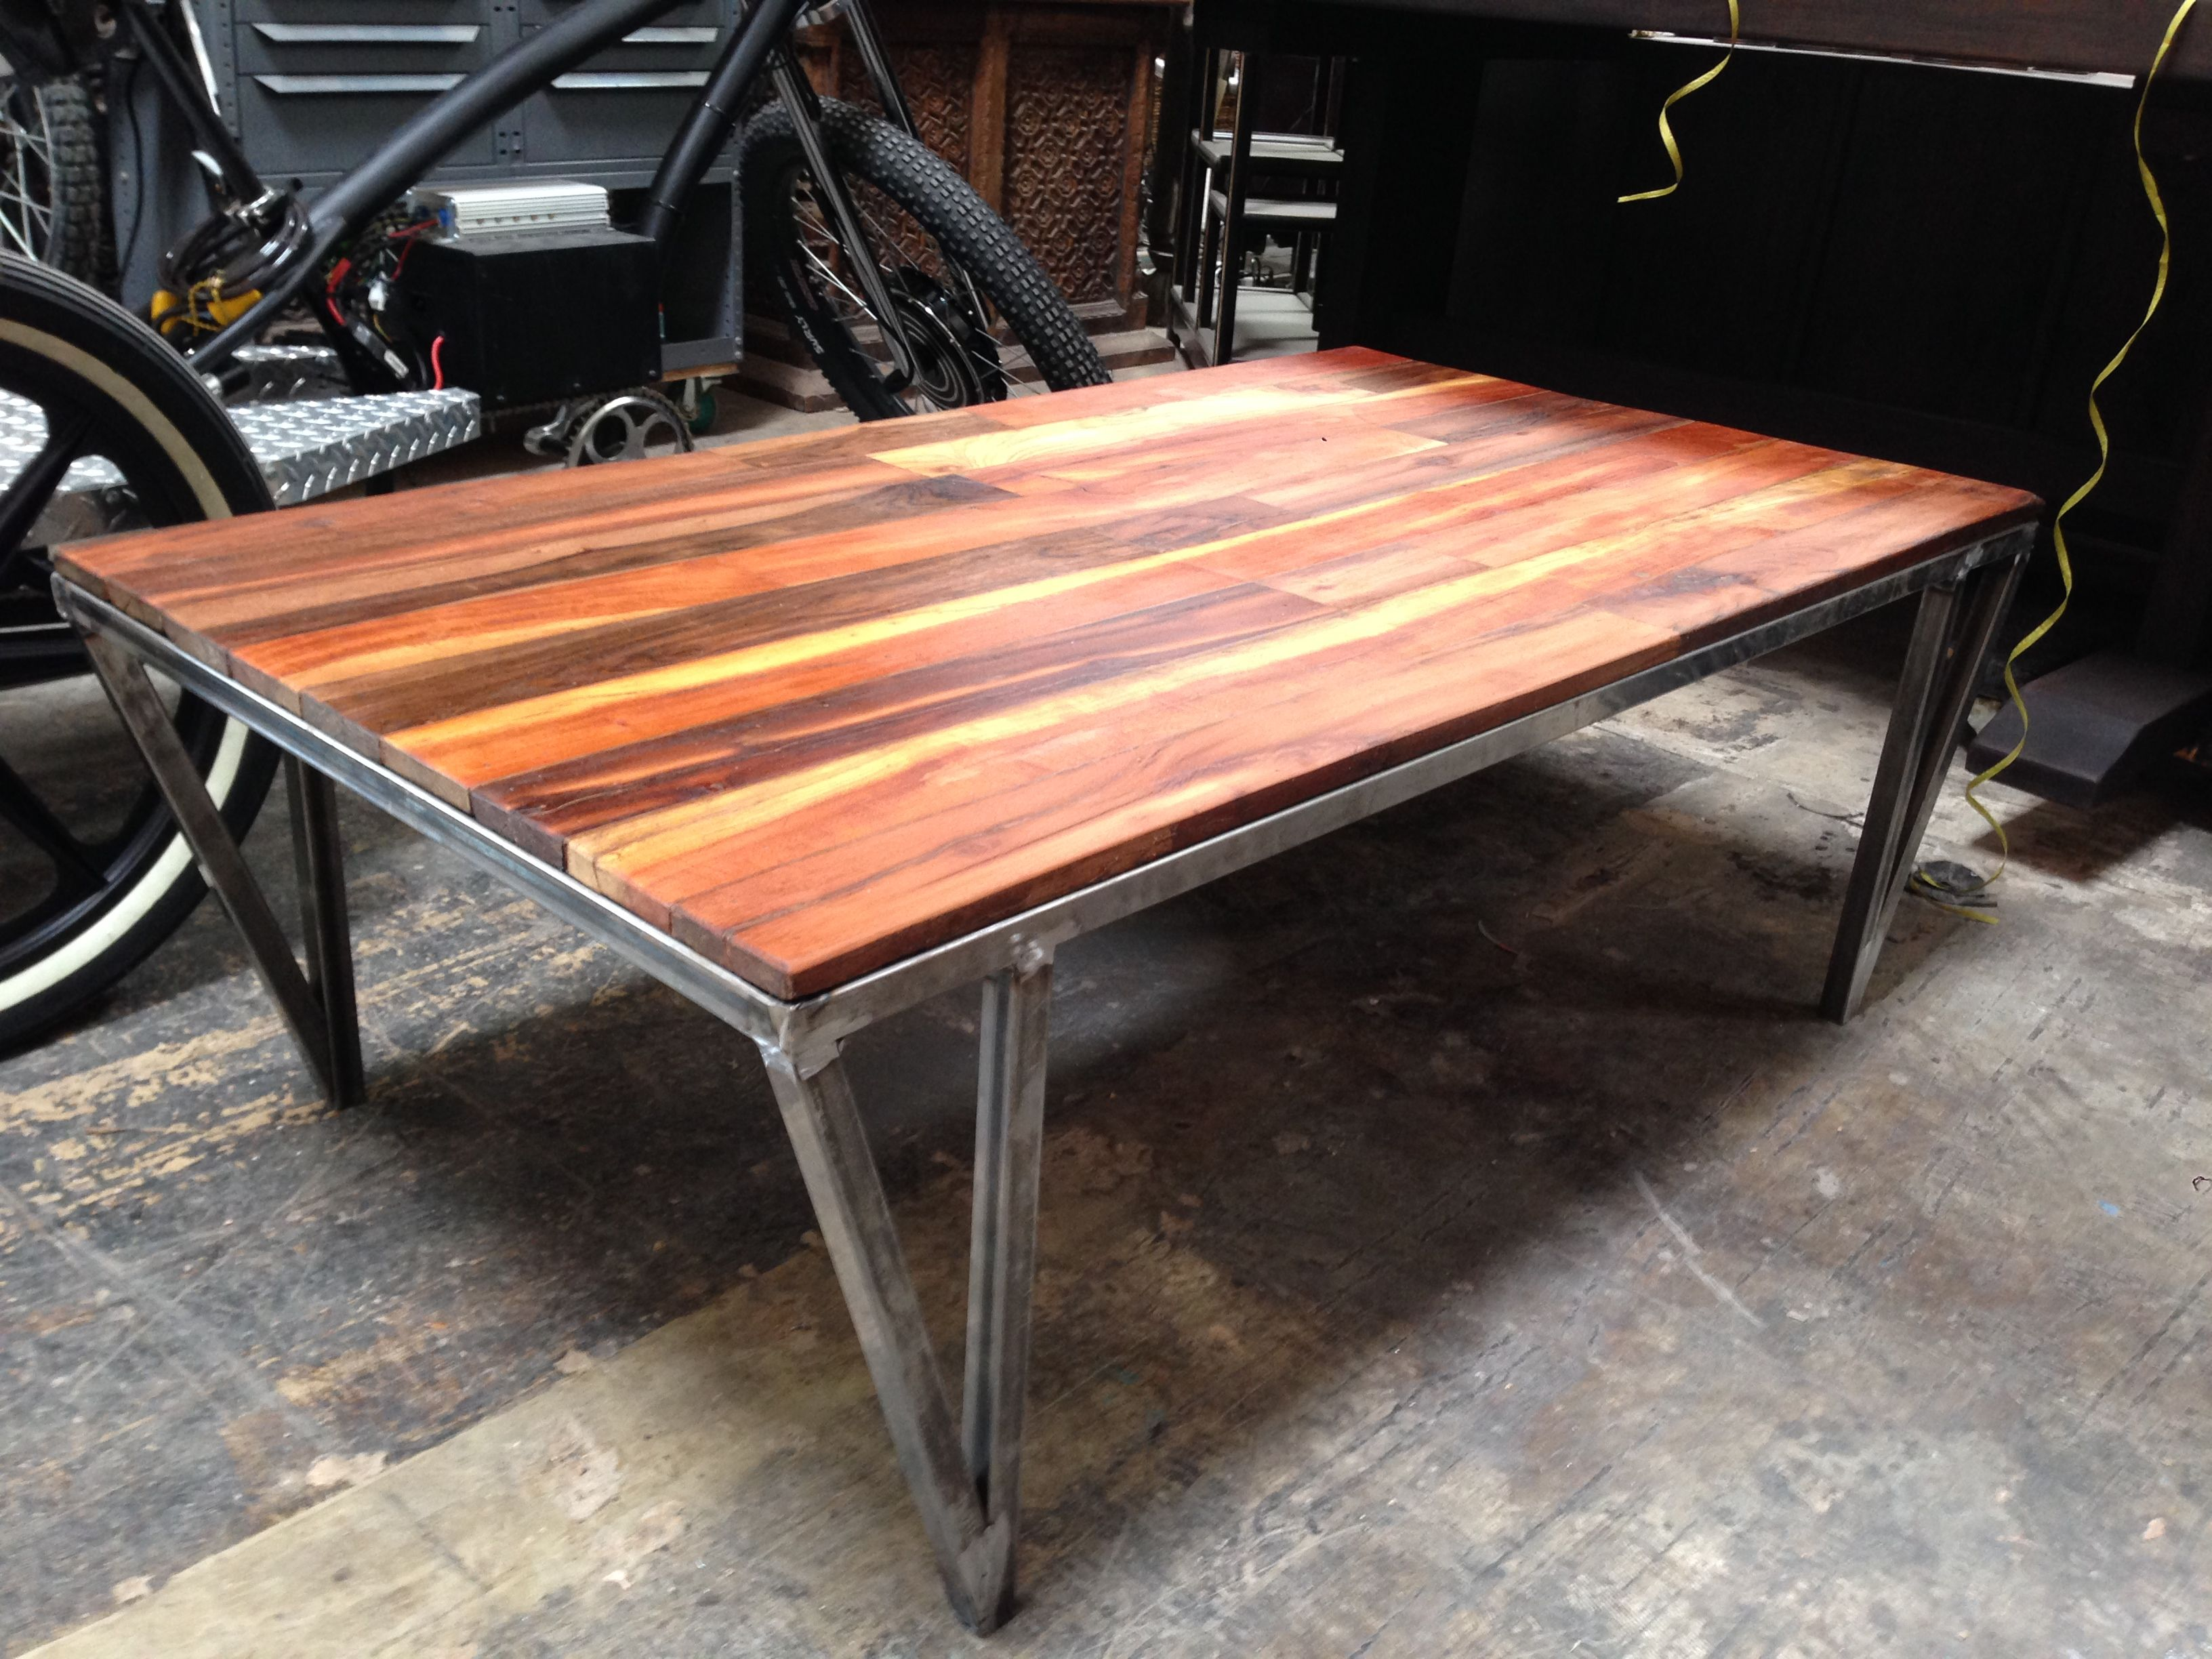 Enchanting brown varnished reclaimed wood coffee table with iron enchanting brown varnished reclaimed wood coffee table with iron base on barn wood floors as rustic geotapseo Image collections